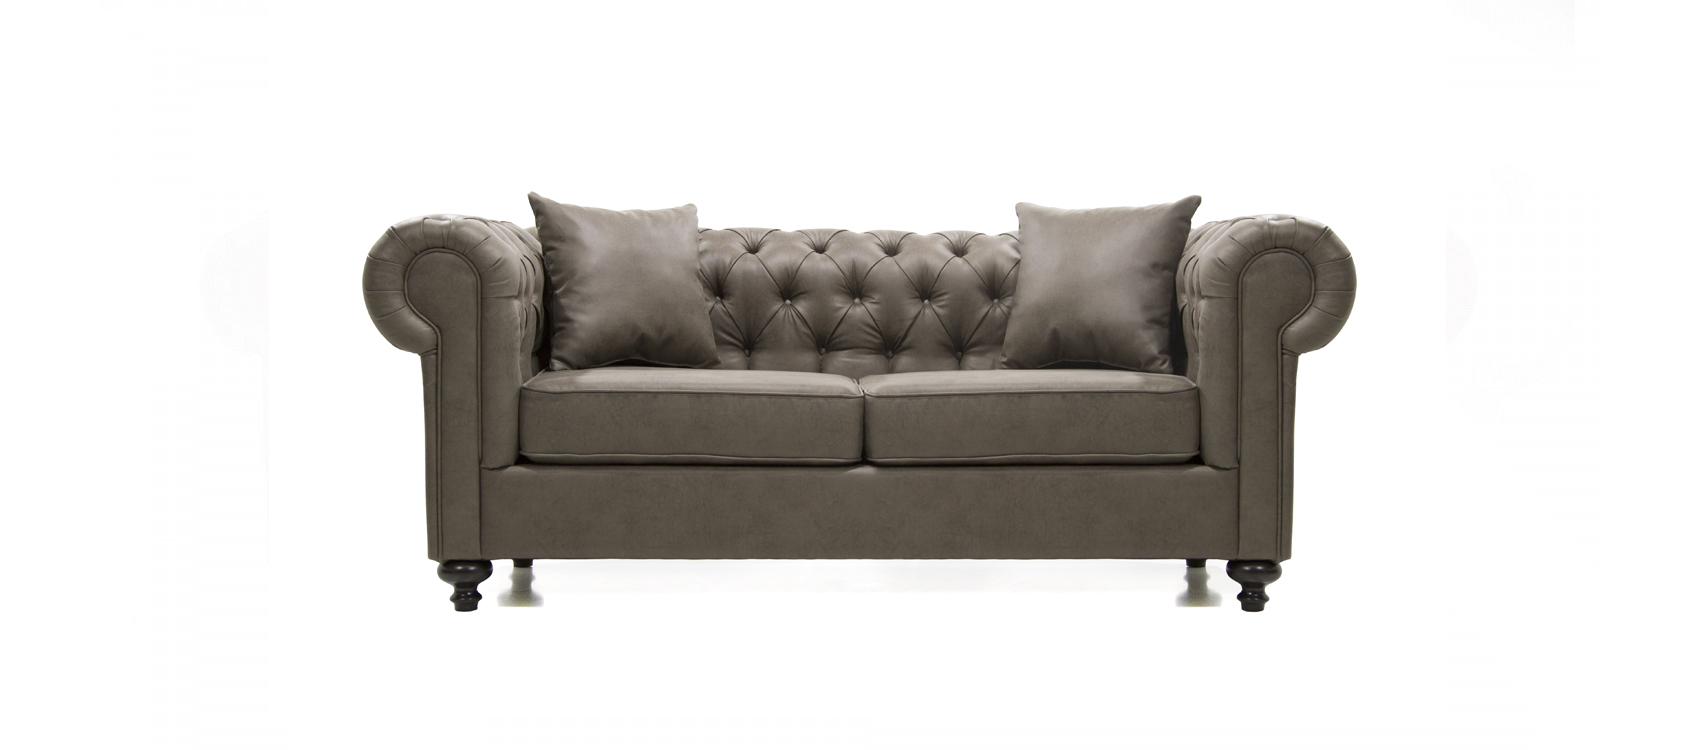 Sofa CHESTER 2 SEATER صور 3